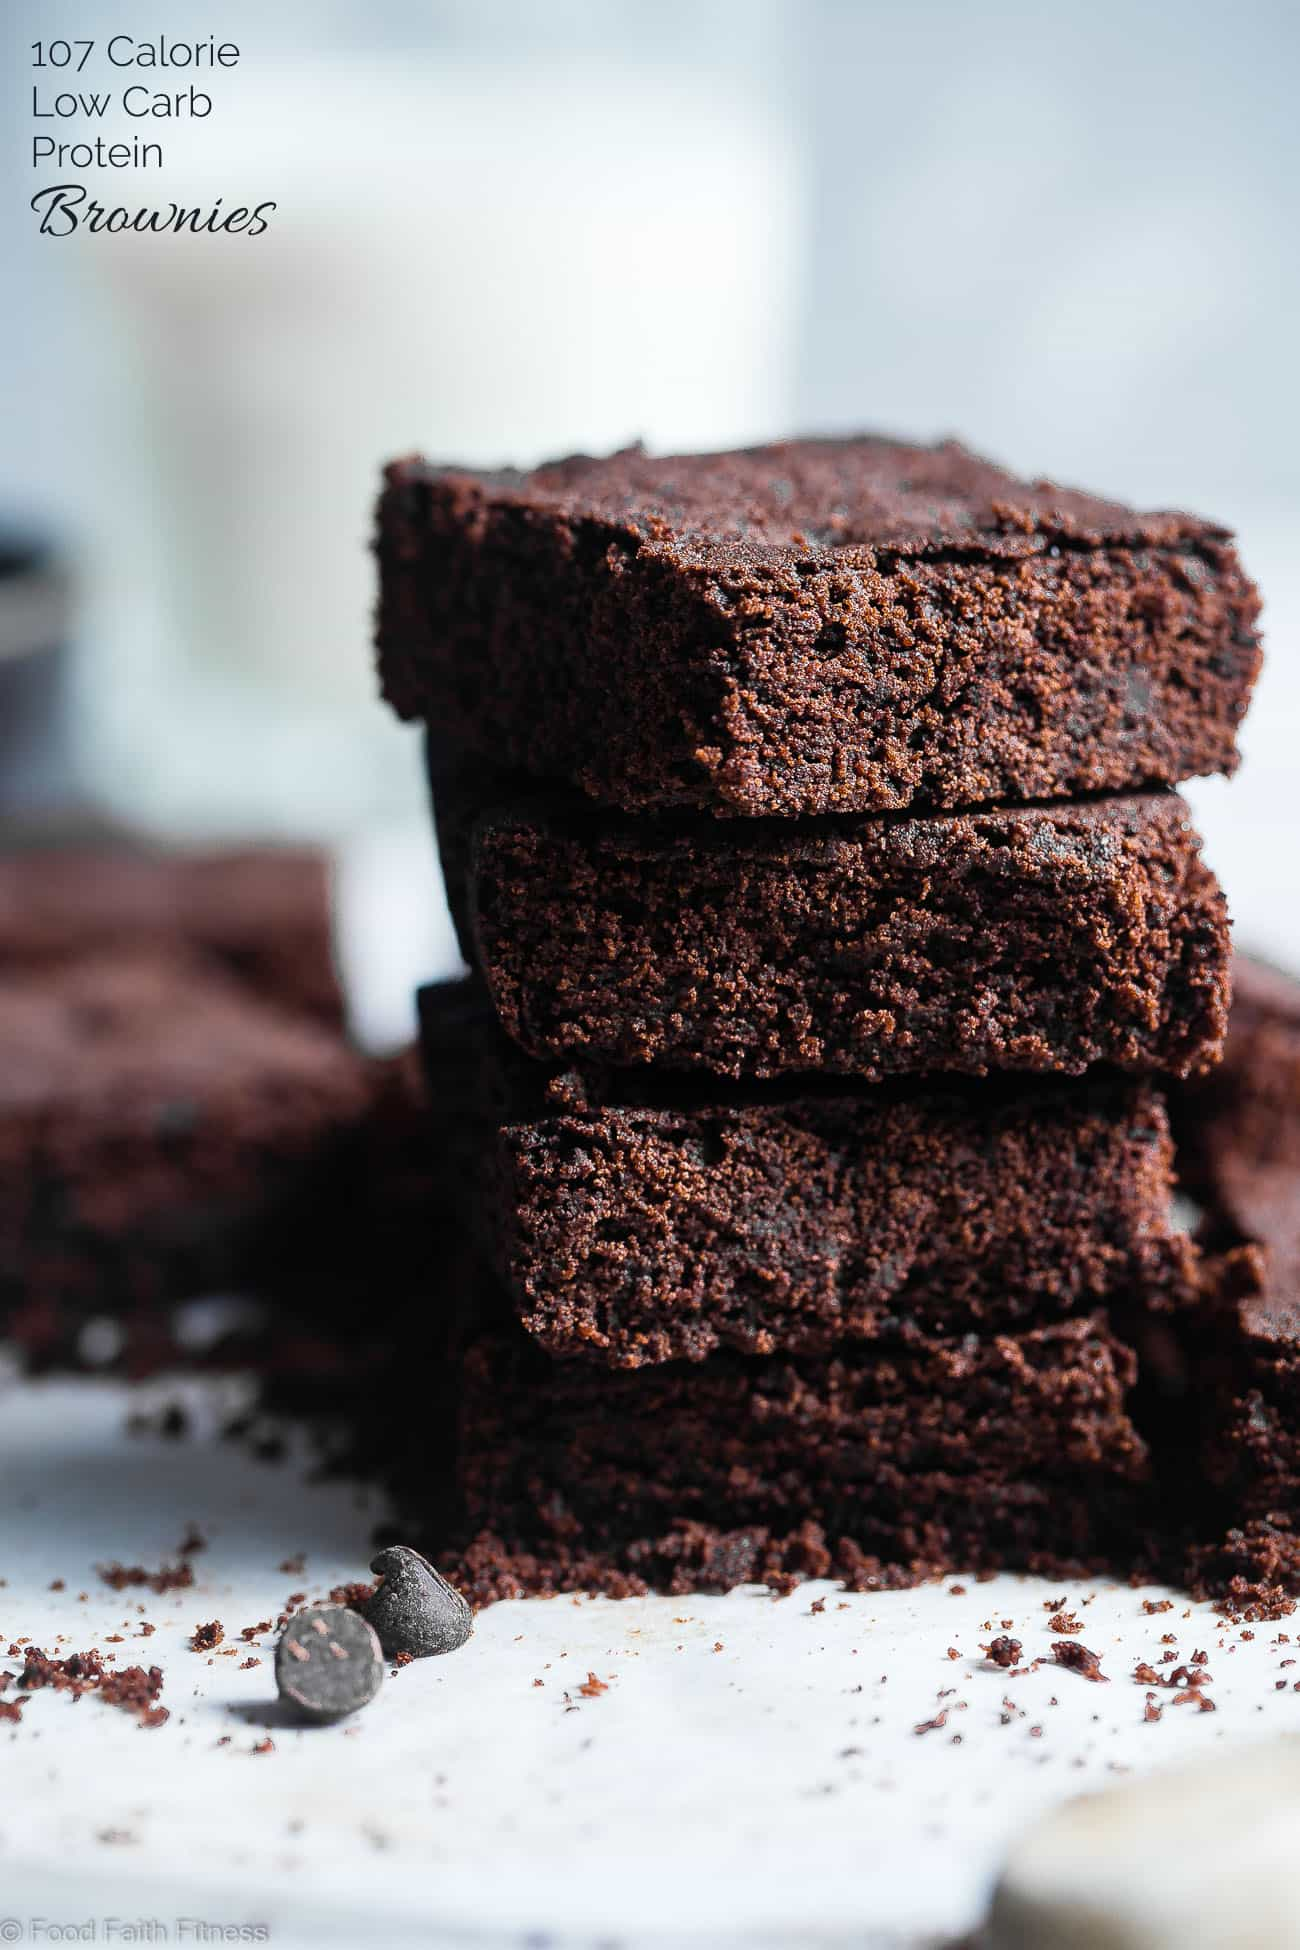 Low Carb Keto Protein Brownies -SO dense and chewy you would never believe they are only 107 calories and sugar/grain/dairy/gluten free and paleo friendly! The perfect healthy treat! | Foodfaithfitness.com | @FoodFaithFit